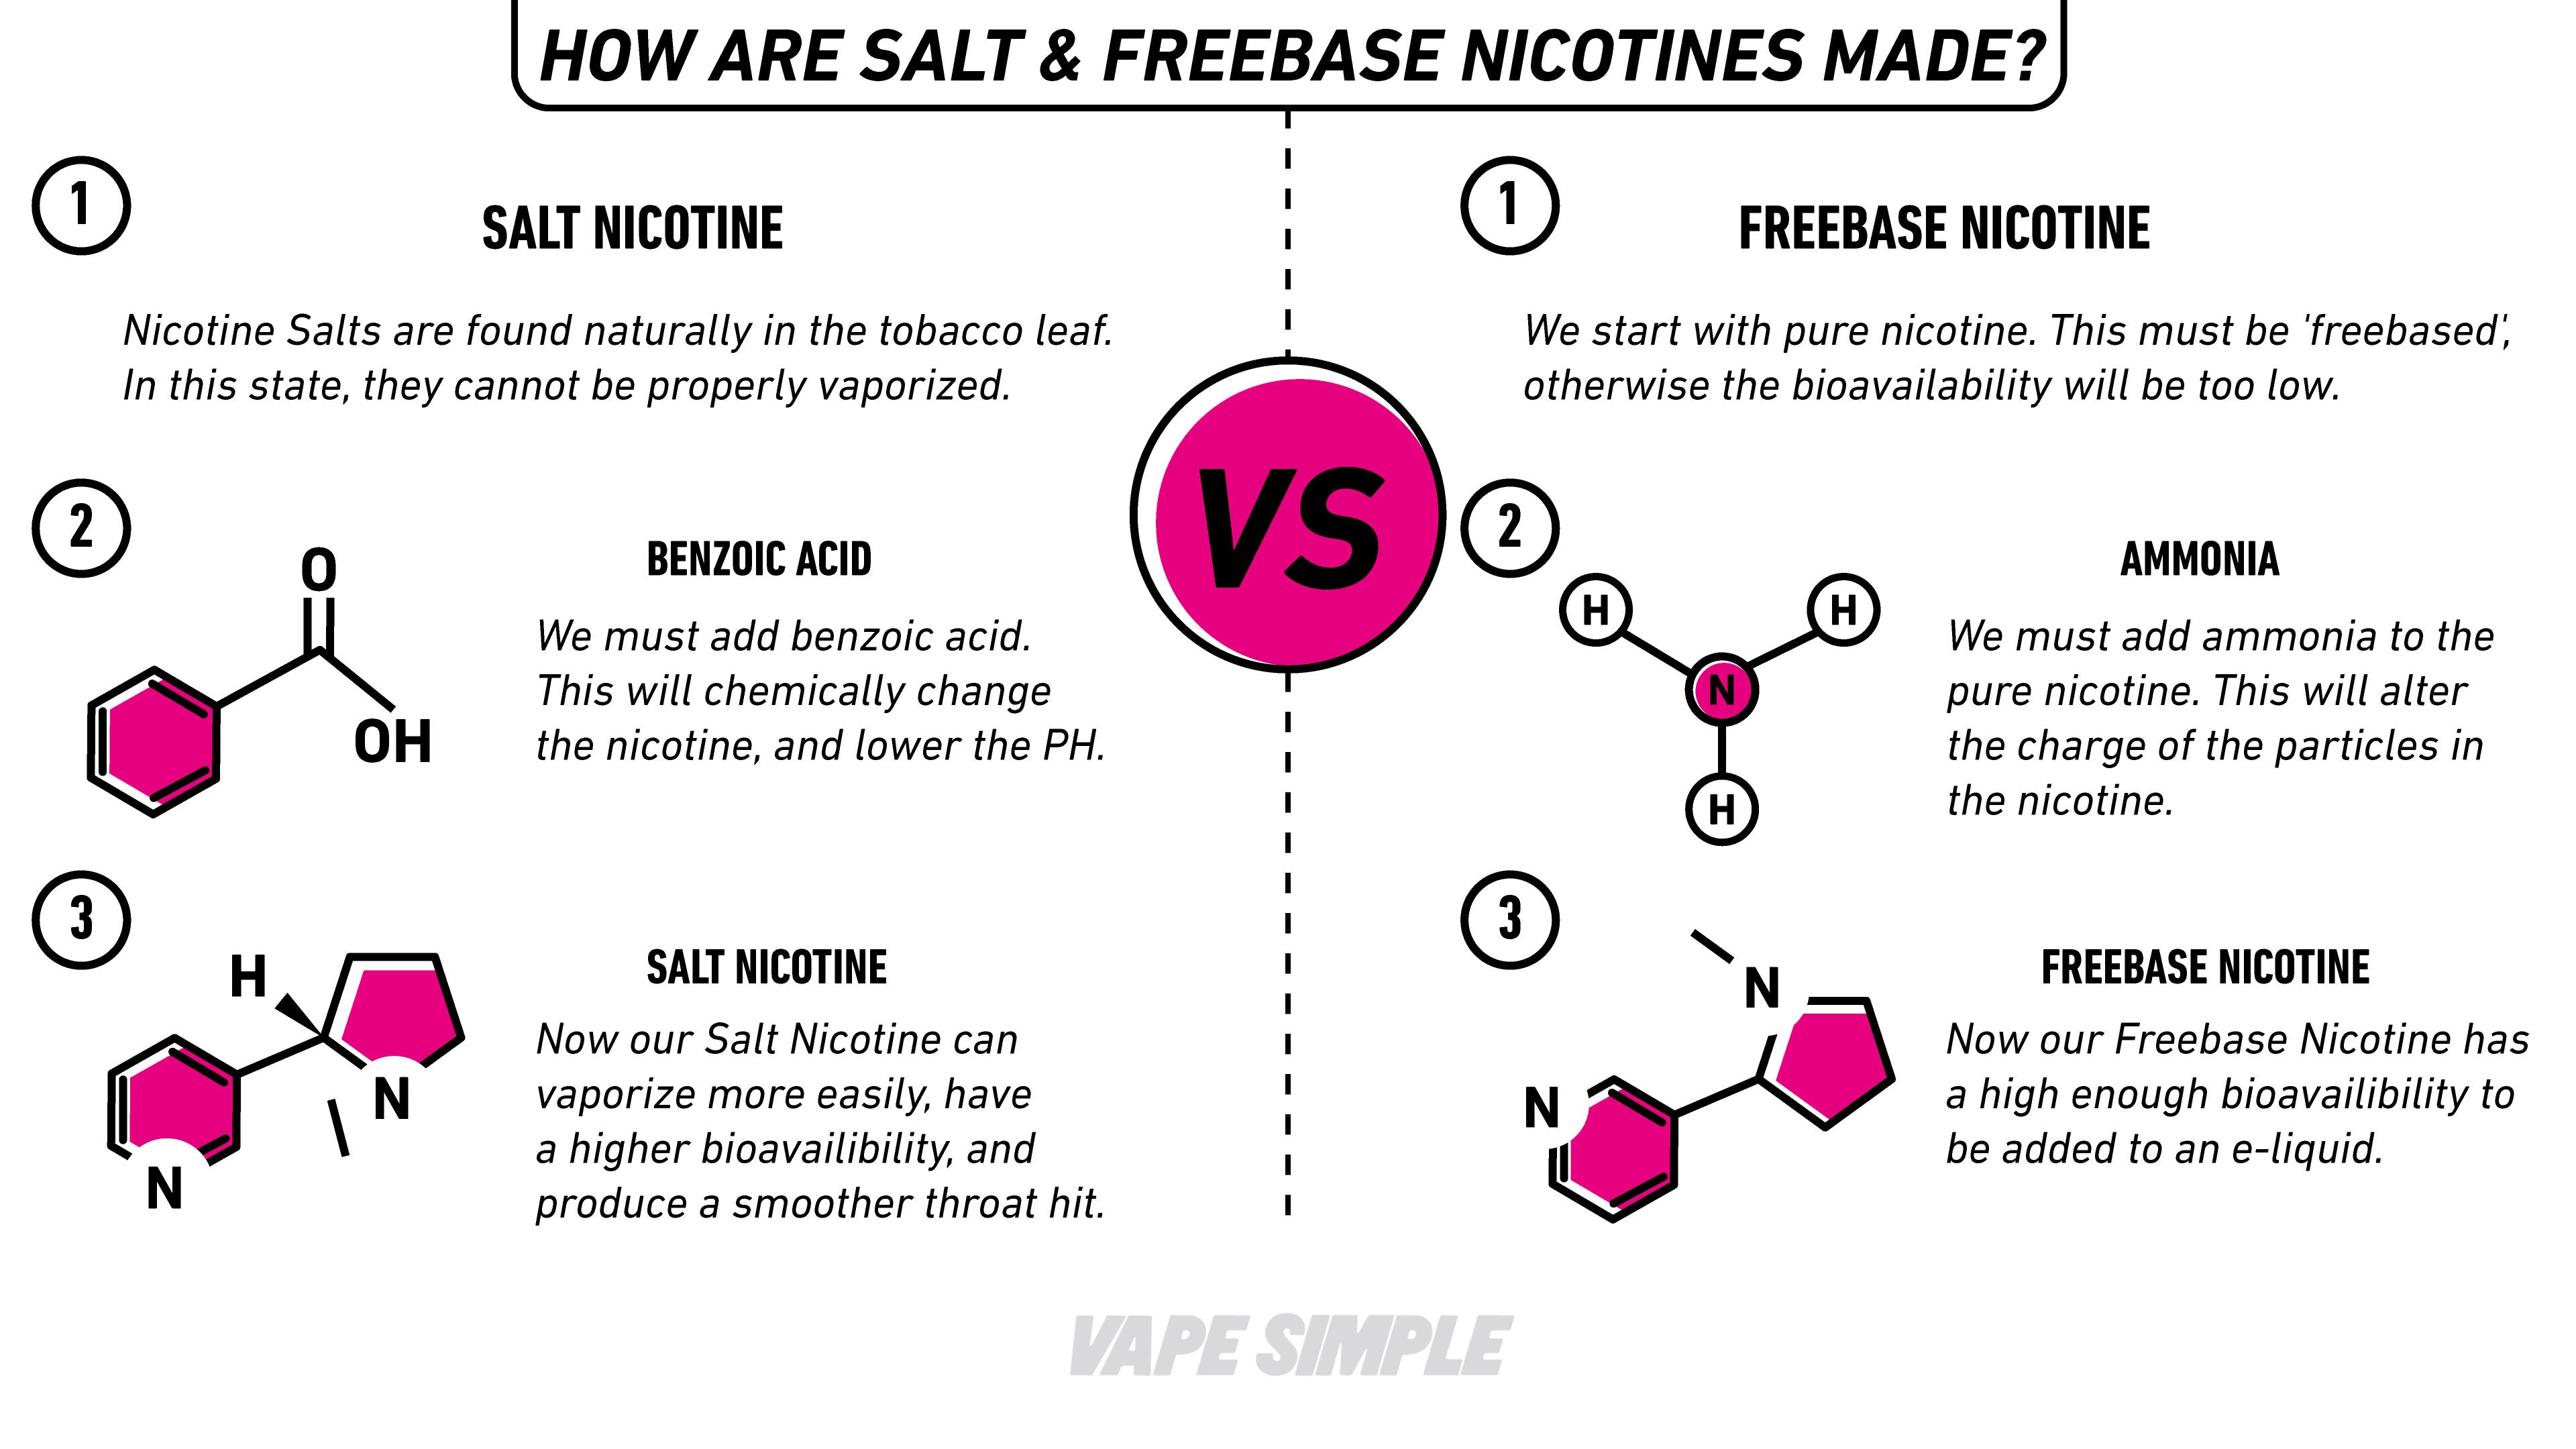 salt freebase nicotine